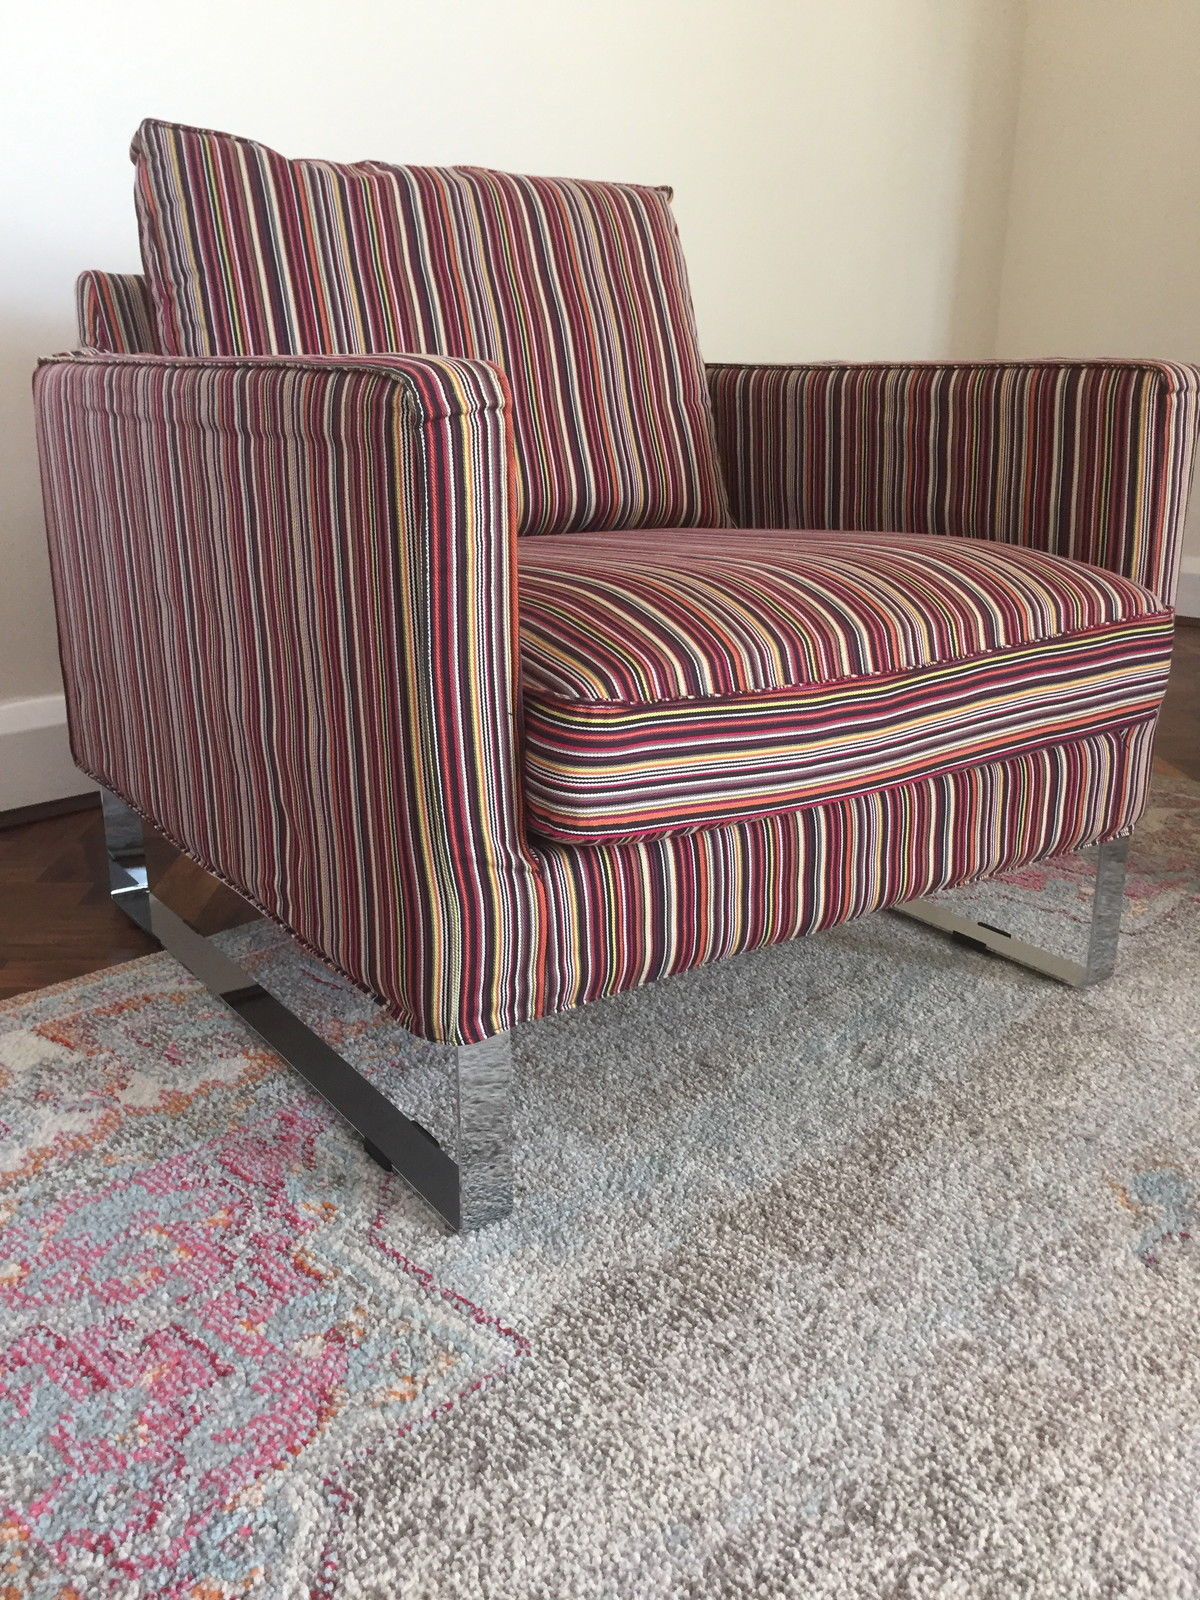 ikea-mellby-armchair-and-striped-cover